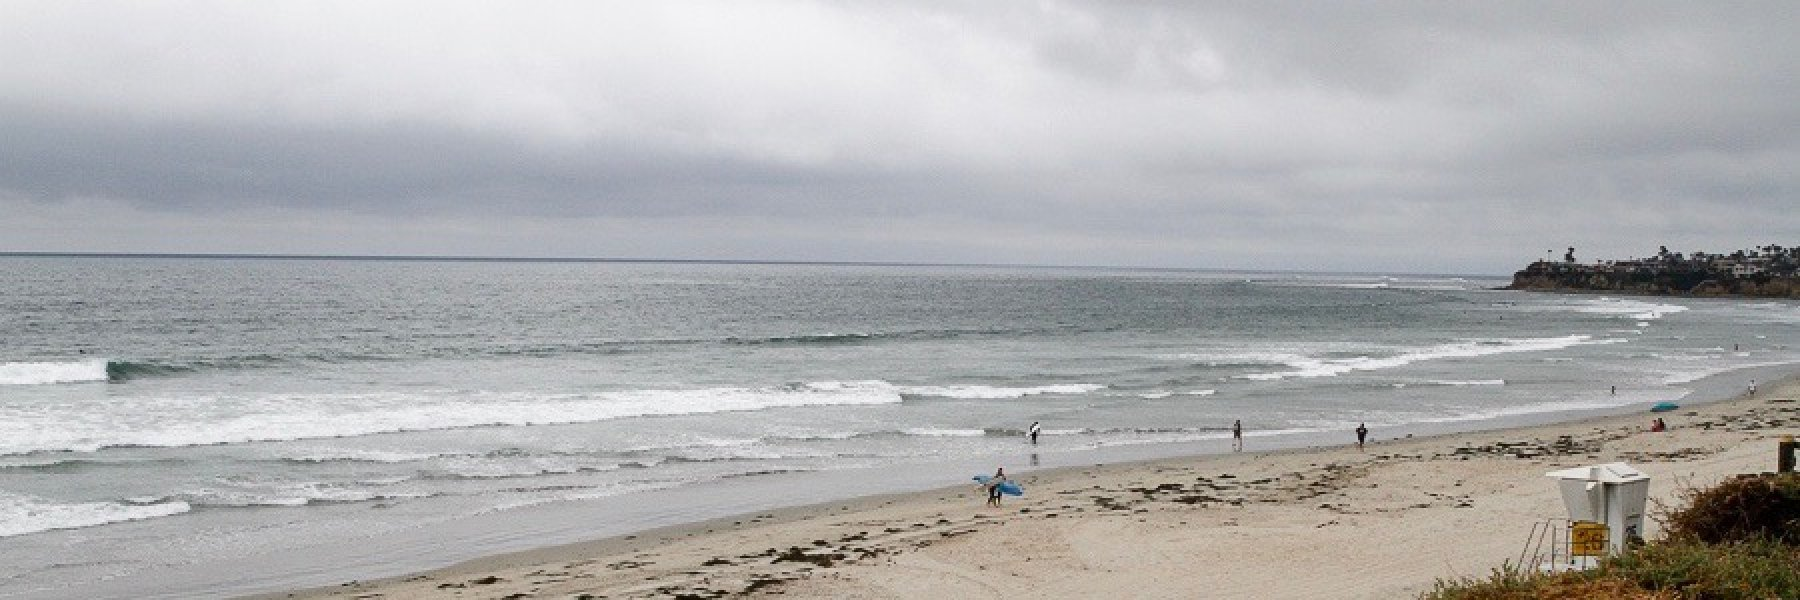 Pacific Beach is a community of homes in San Diego California